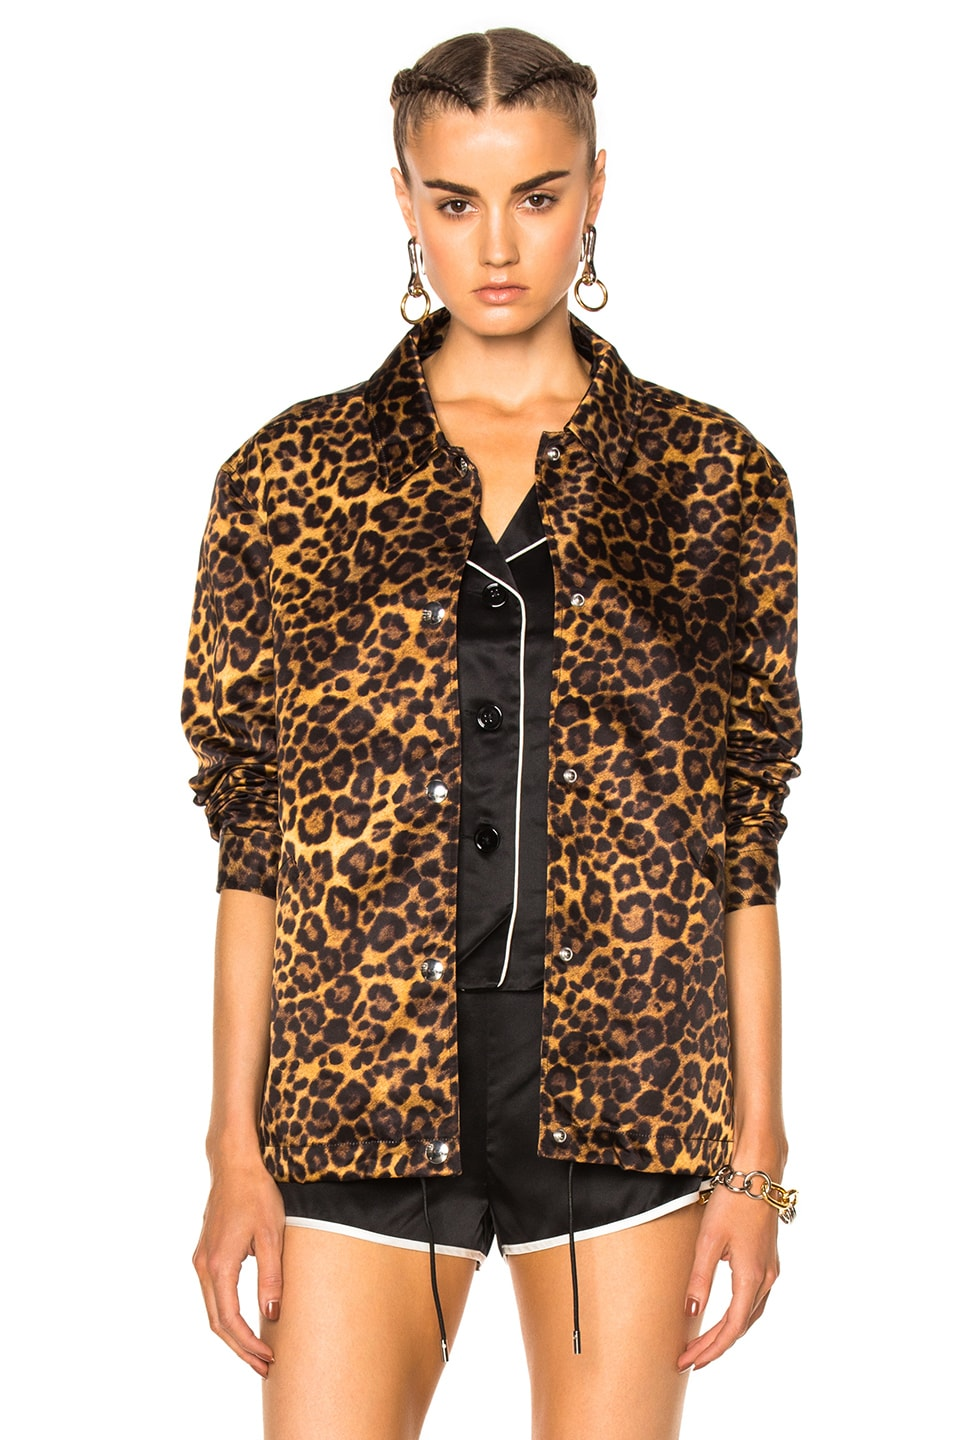 6947c5156234 Image 1 of Alexander Wang Embroidered Patch Jacket in Leopard